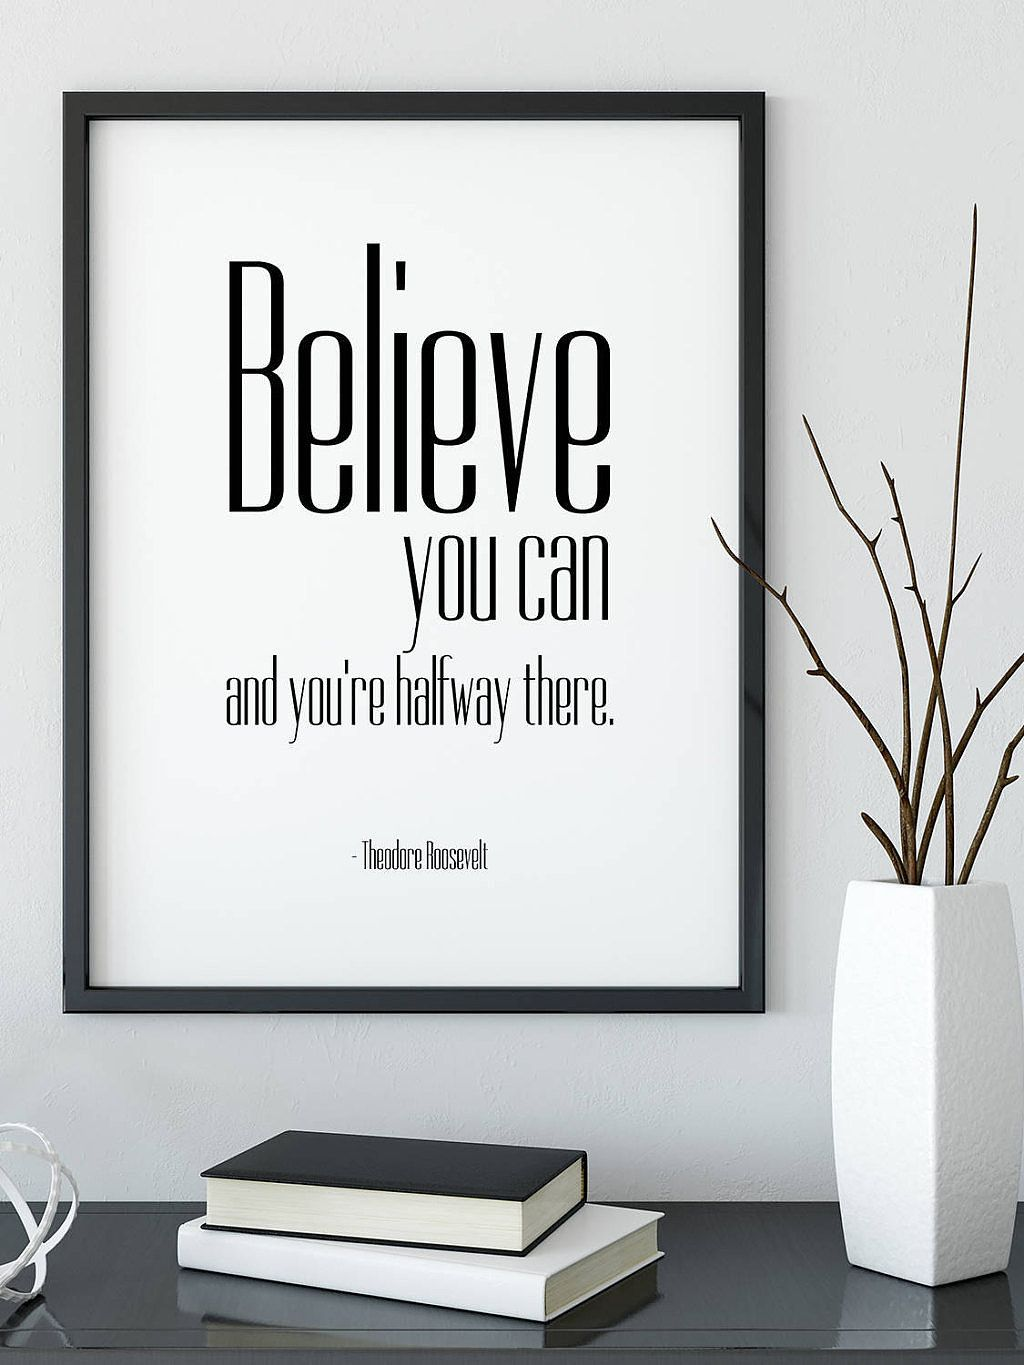 The Perfect Wall Decor For Your Office Wall Art A Motivational Quote By Theodore Roosevelt That Will Li Office Wall Art Inspirational Quotes Home Office Decor